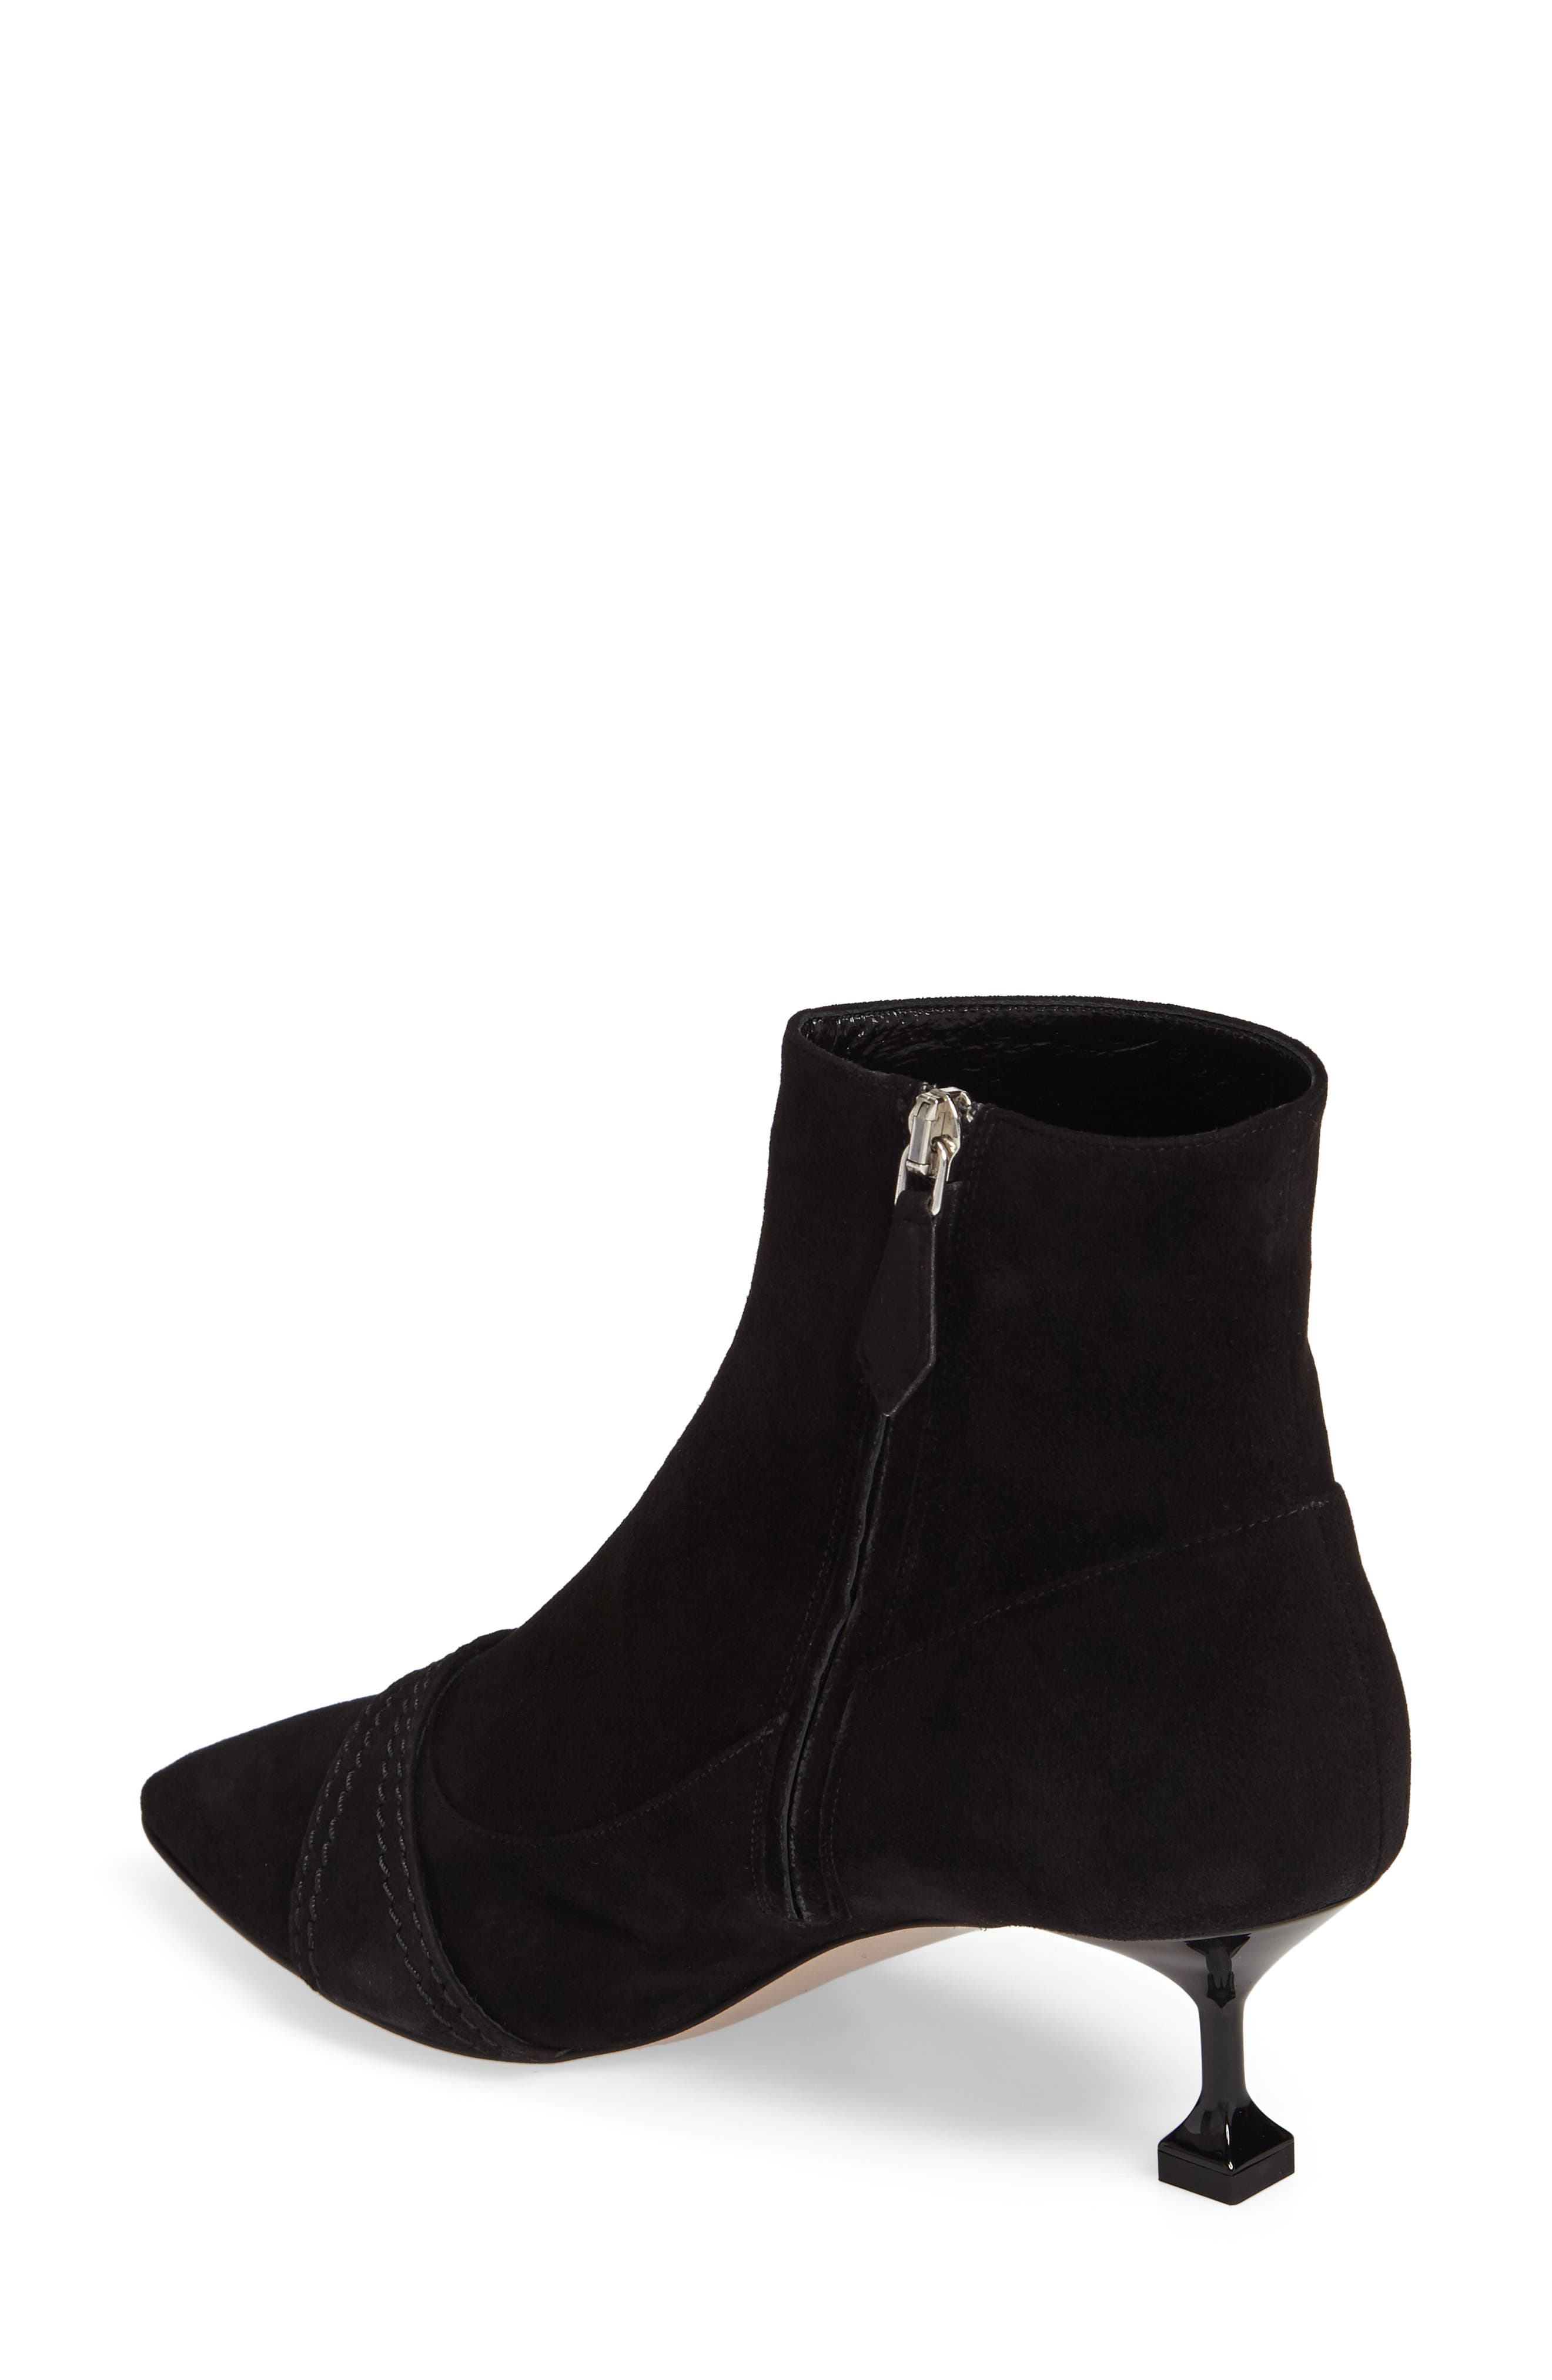 Alternate Image 2  - Miu Miu Embellished Pointy Toe Bootie (Women)